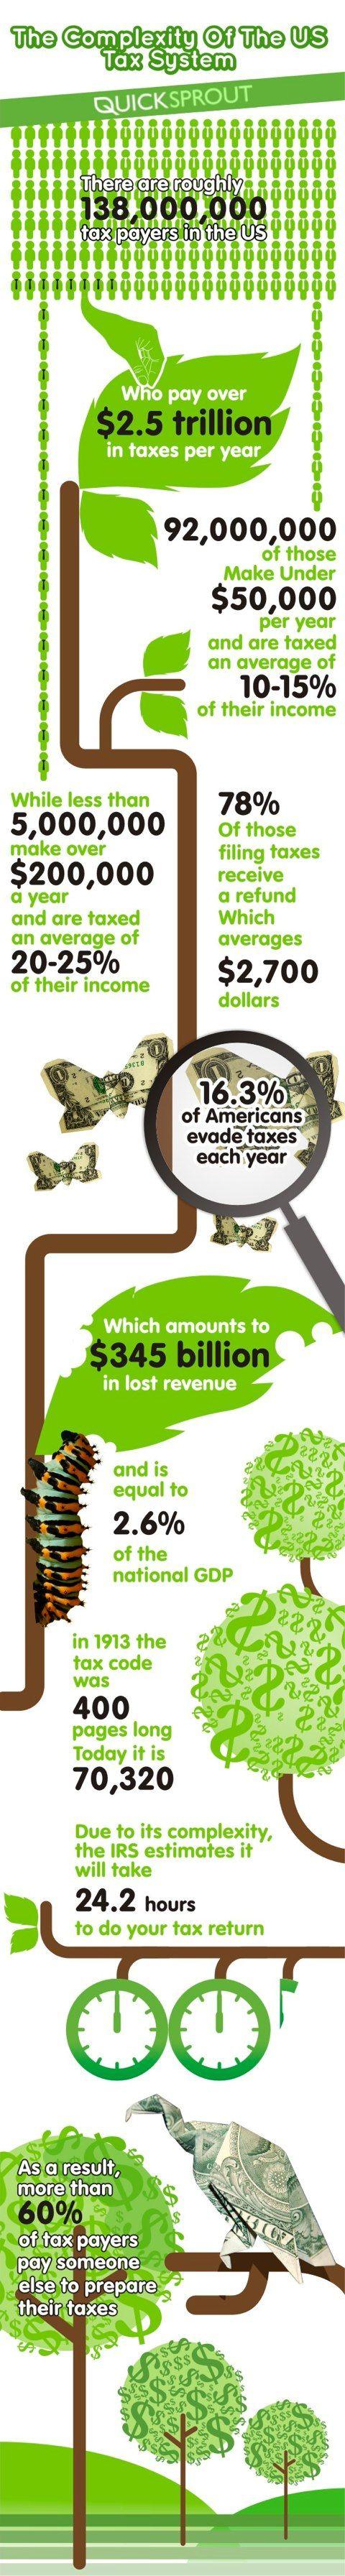 He infographic points out that there are 138 million tax payers in the u s and how